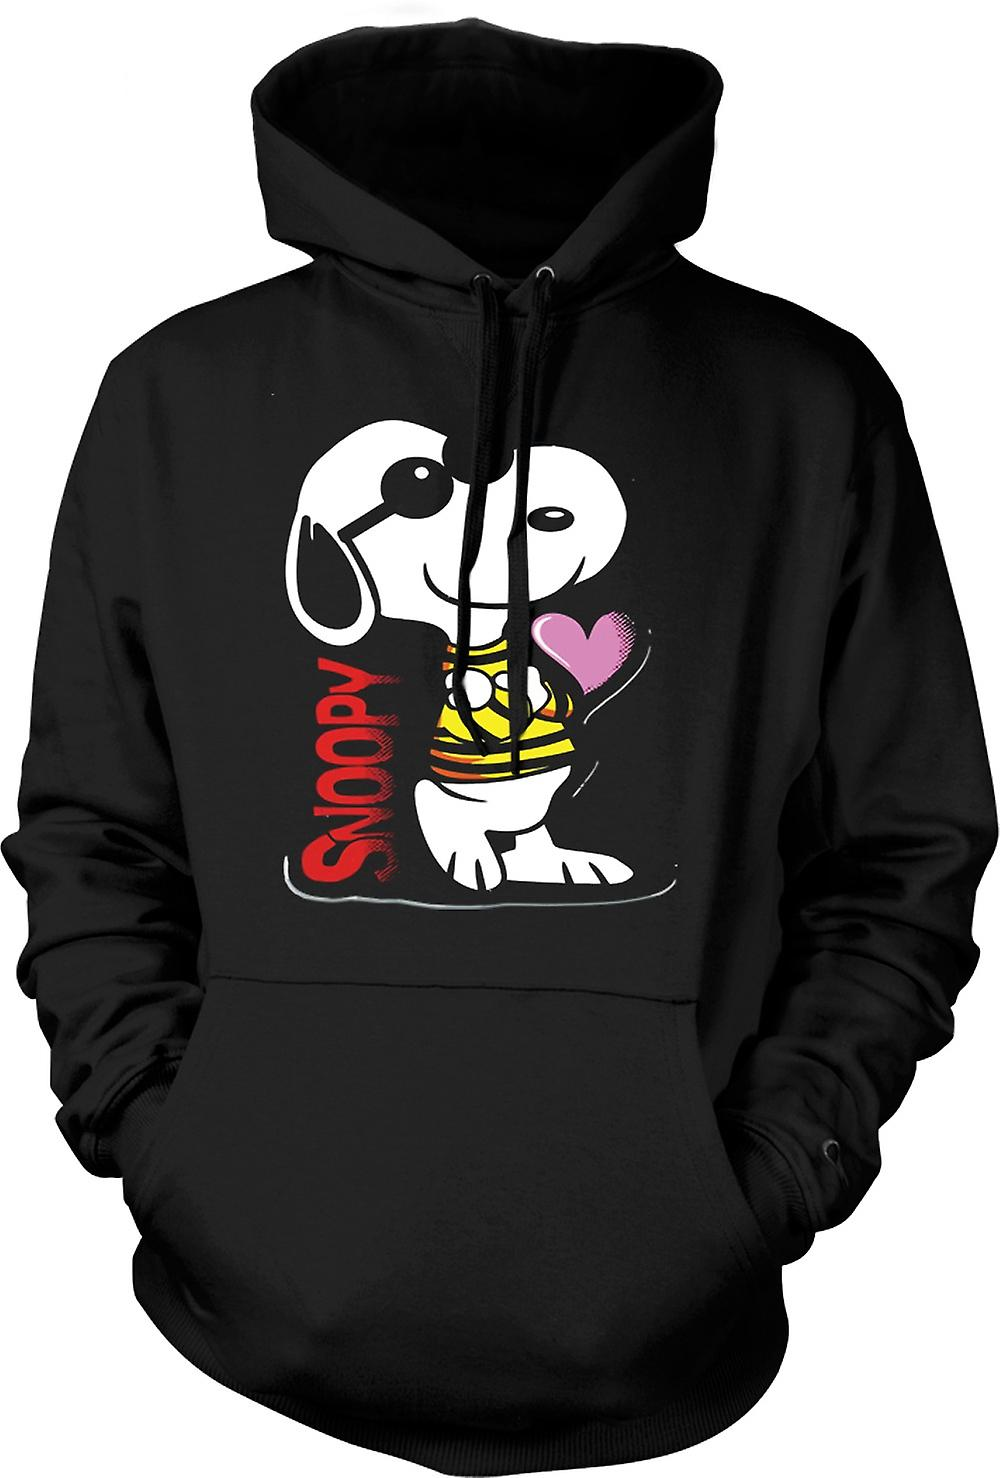 Mens Hoodie - Snoopy Cartoon With Heart